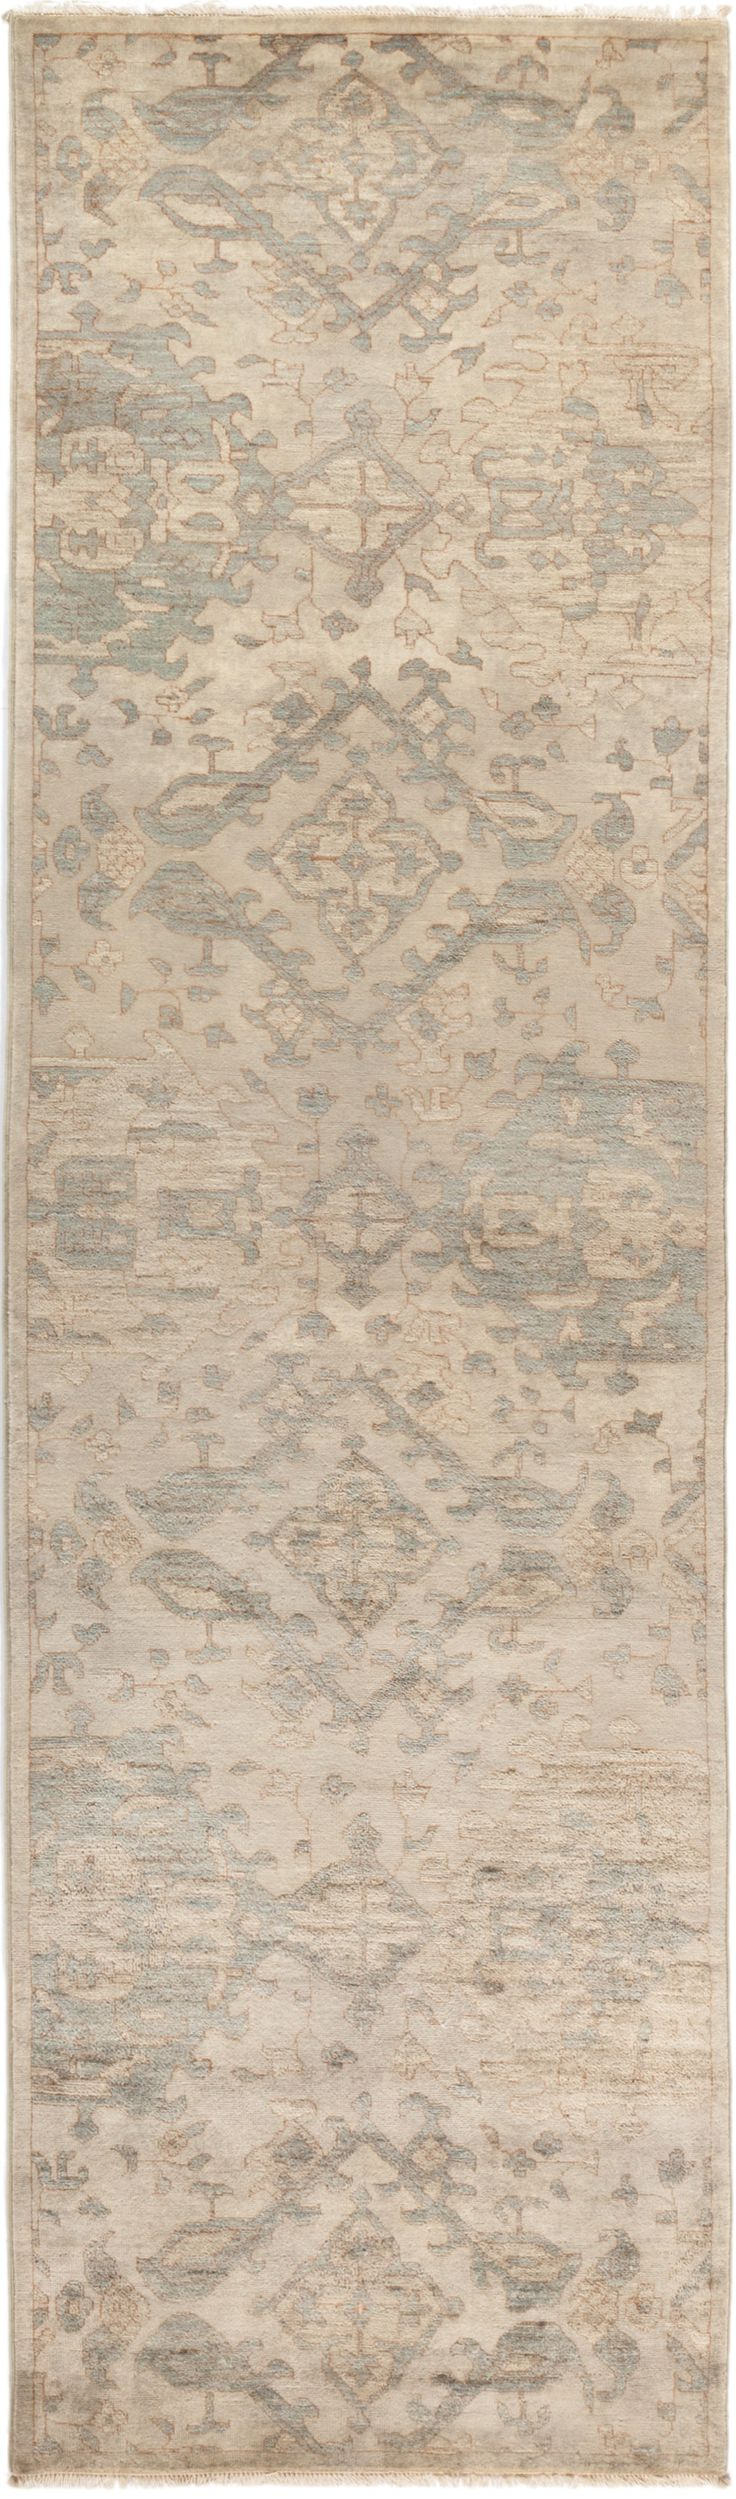 """Jacklynne One of a Kind Rug 3'1"""" x 10'10"""", Beige - Hand Knotted - Rugs"""